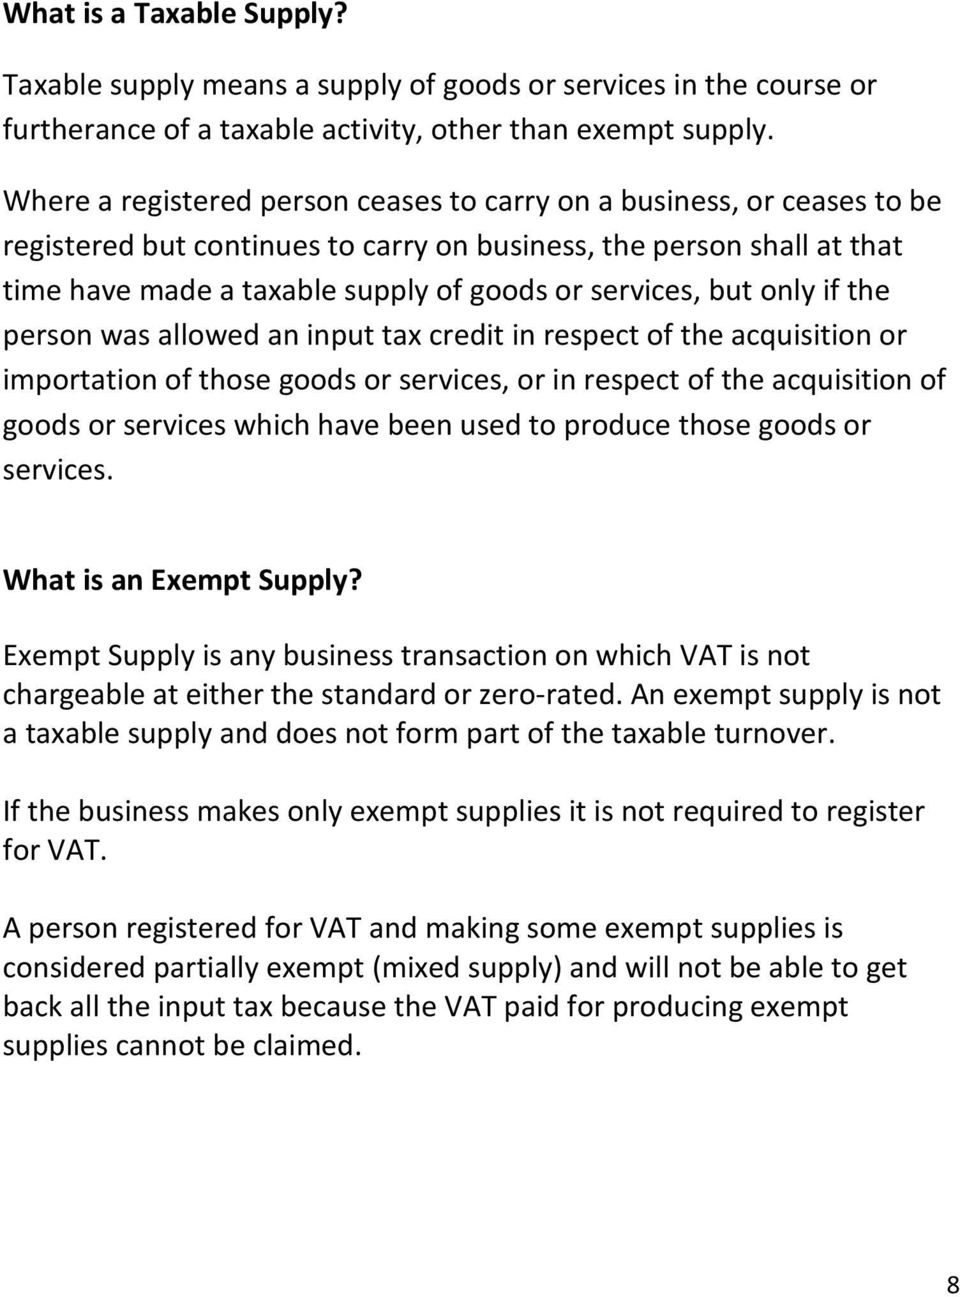 but only if the person was allowed an input tax credit in respect of the acquisition or importation of those goods or services, or in respect of the acquisition of goods or services which have been